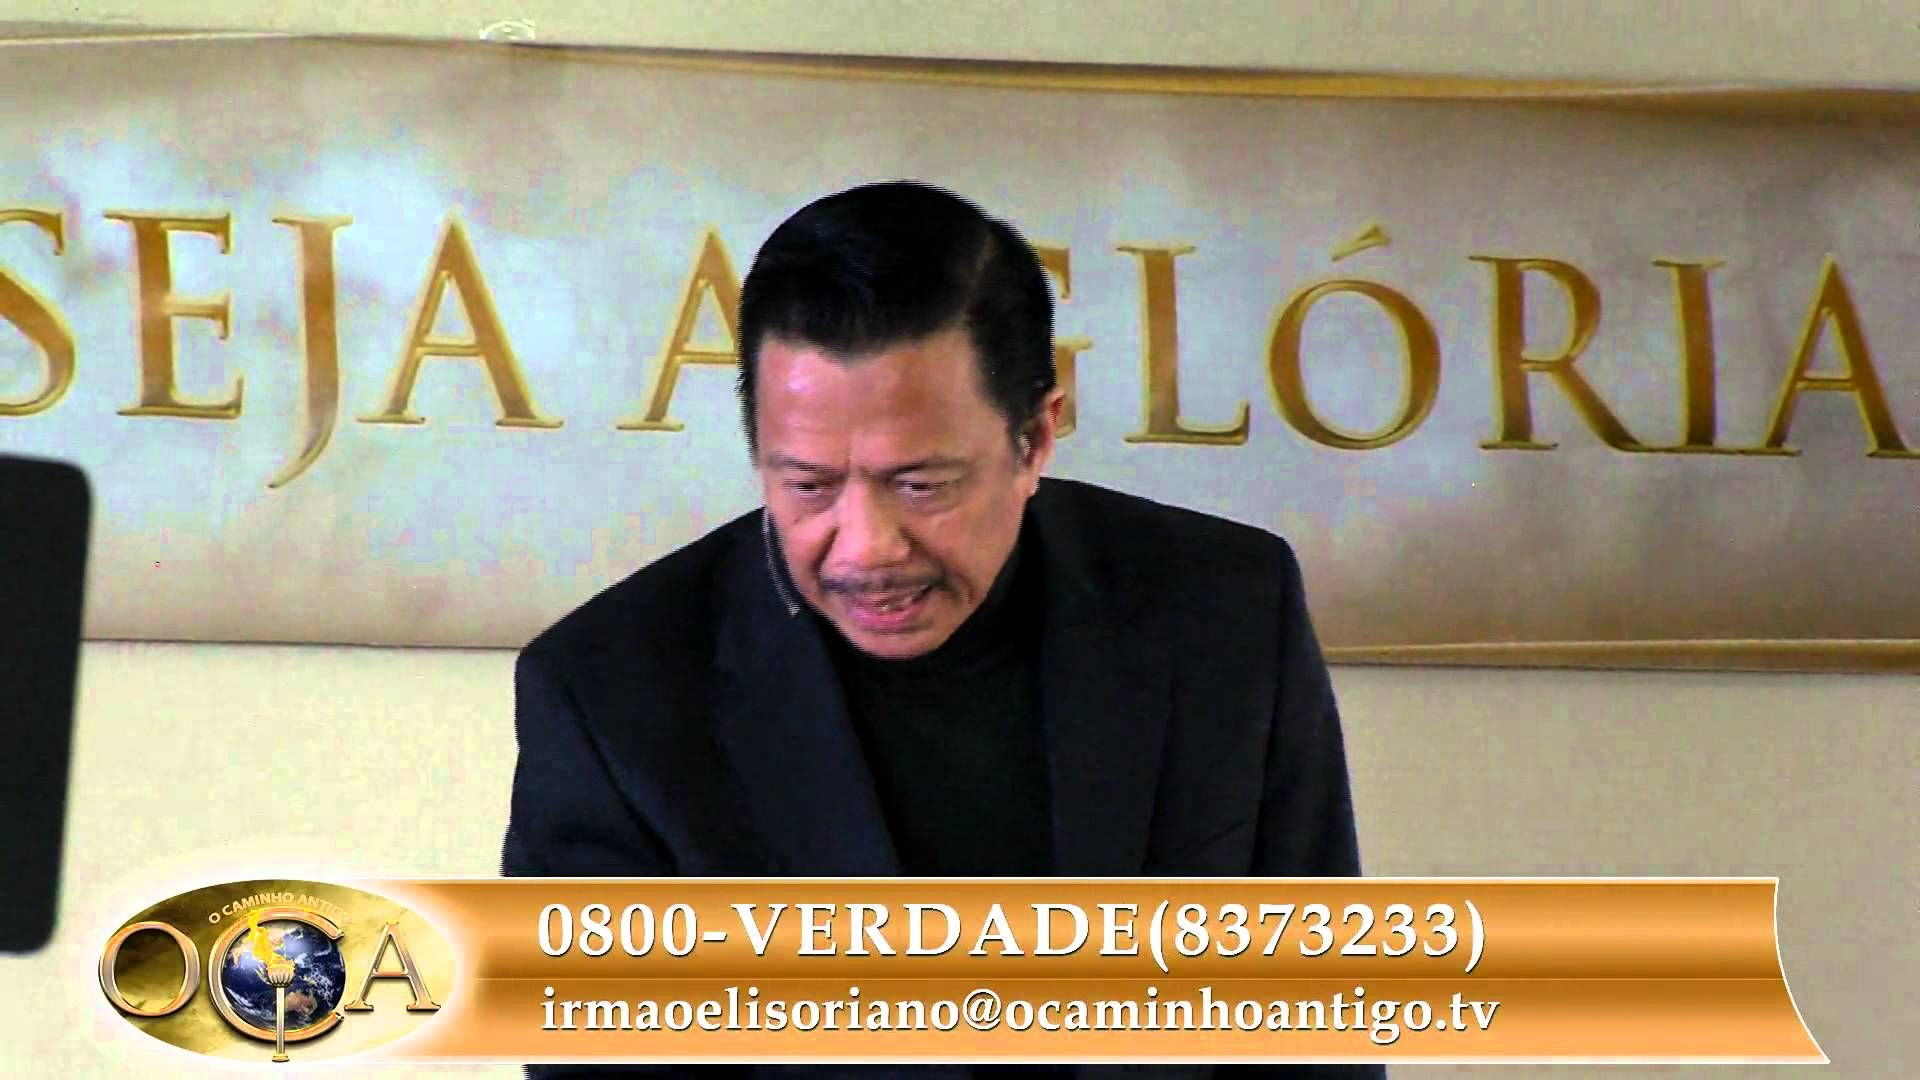 Iglesia ni cristo and dating daan debate by elimination